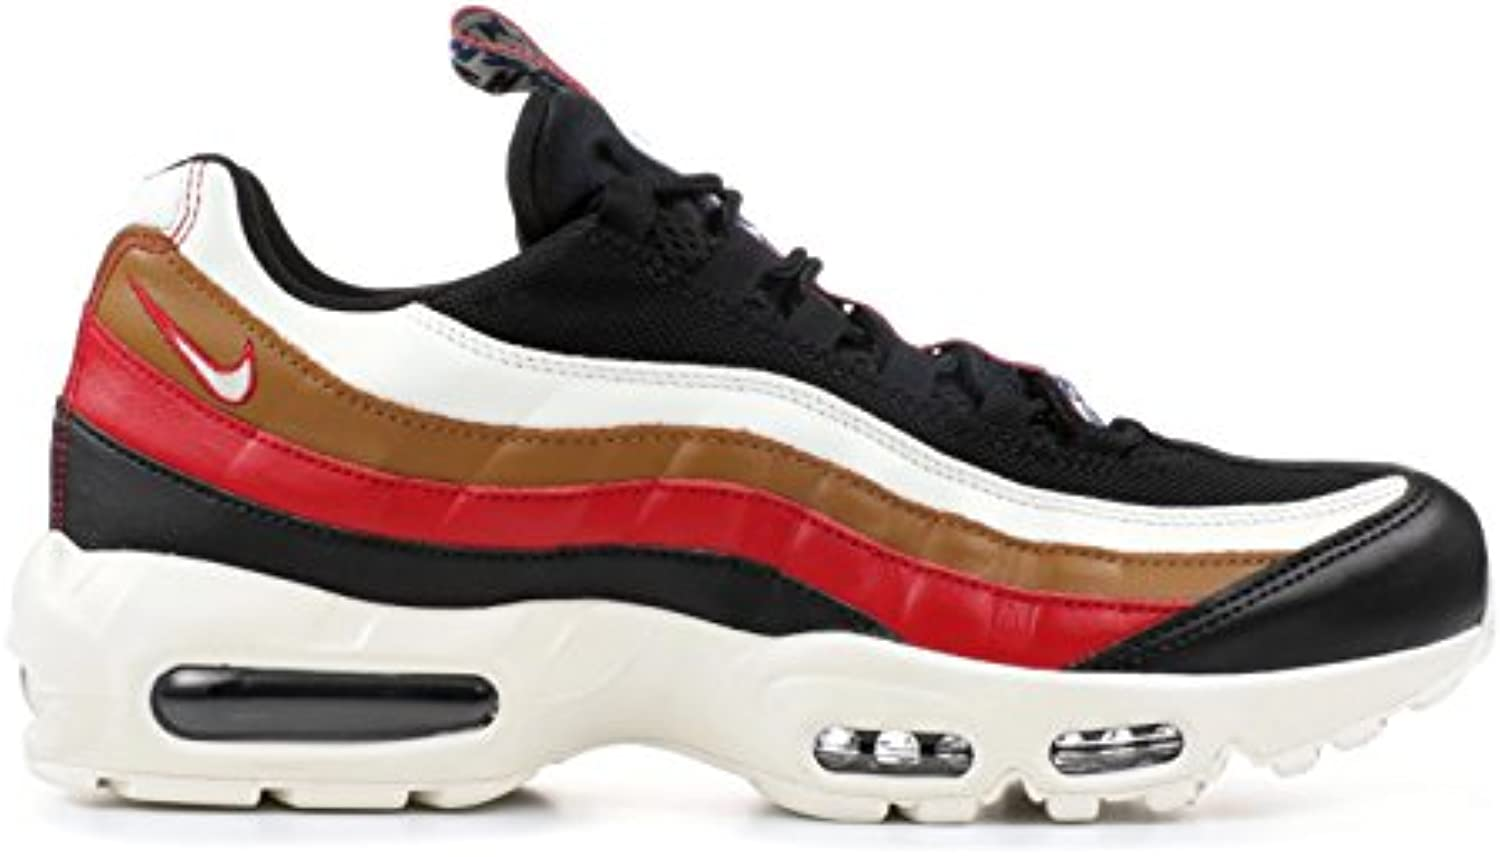 Air Max 95 TT Pull Tab Black Sail Ale Brown Gym Red AJ4077 002 Laufschuhe Herren Damen